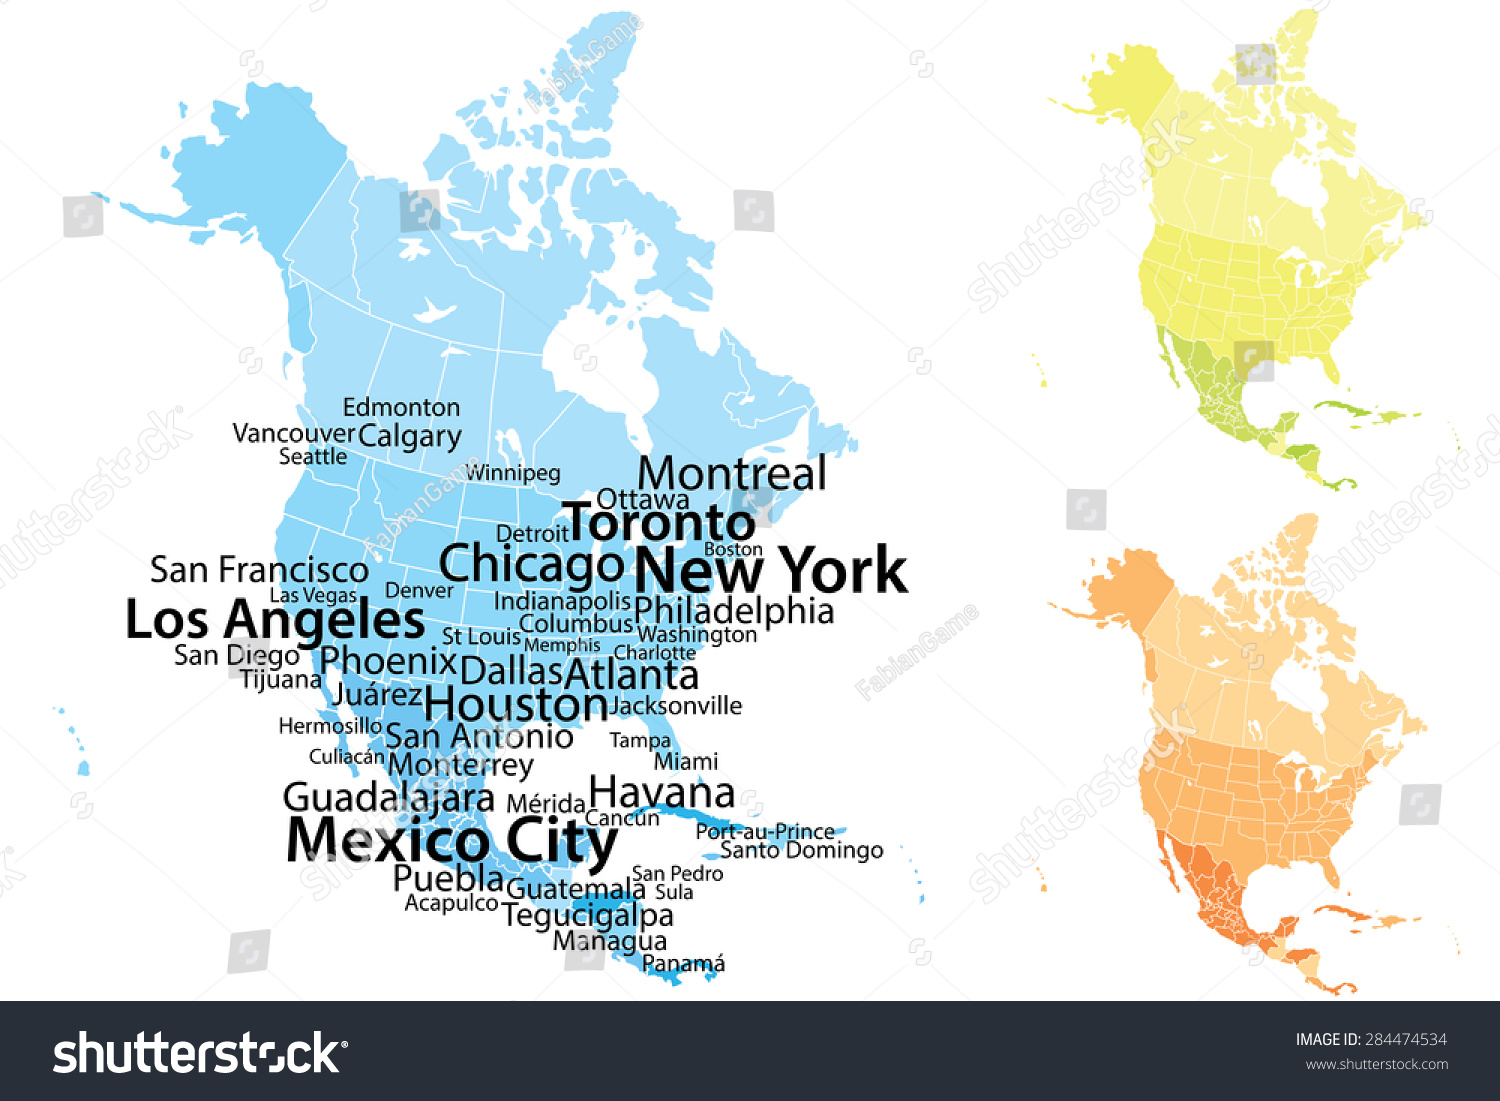 North america map largest cities carefully vectores en stock north america map with largest cities carefully scaled text by city population geographically correct gumiabroncs Image collections